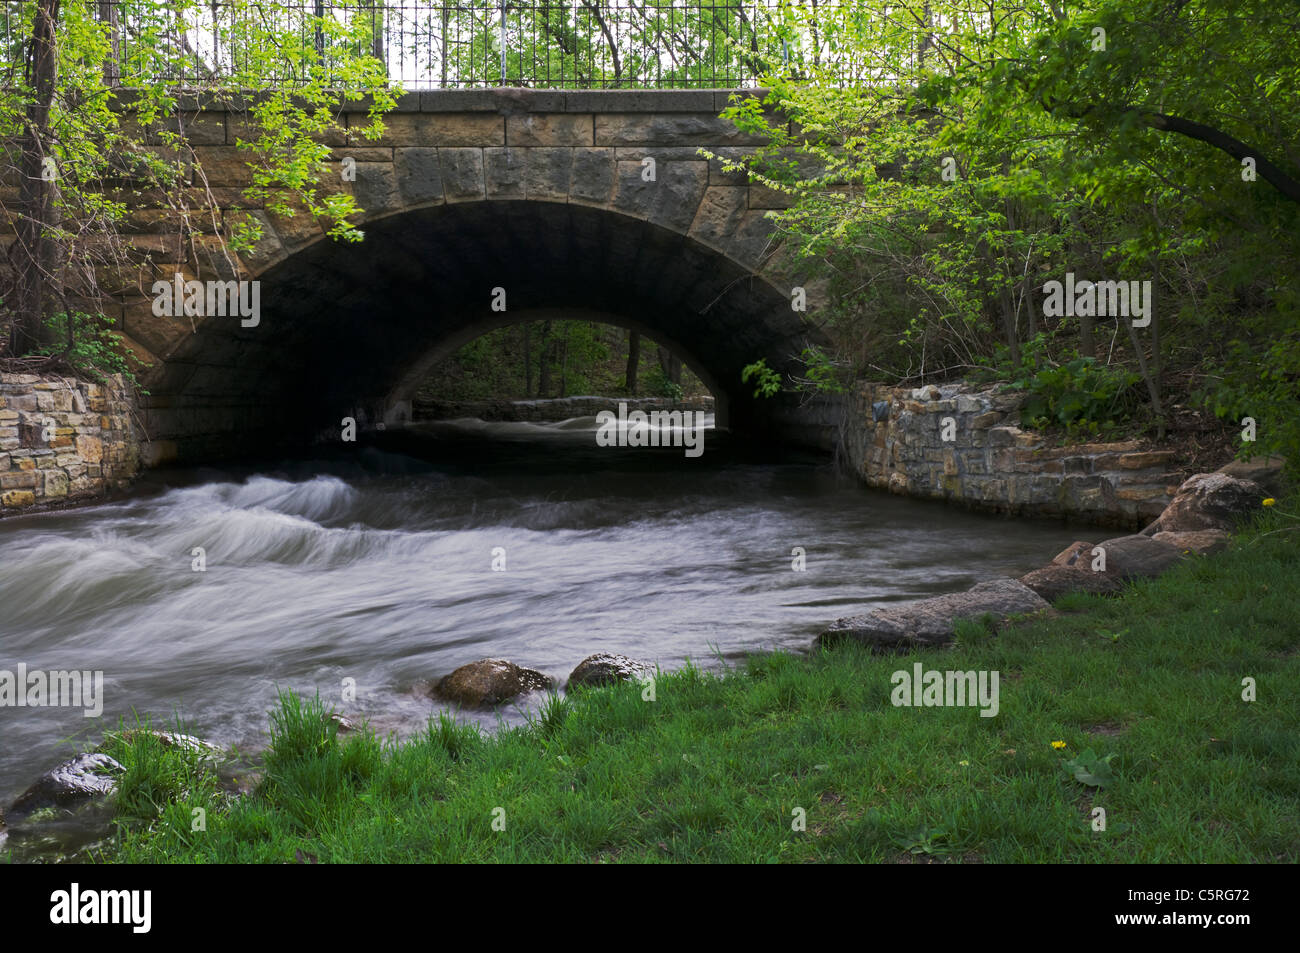 Minnehaha Park aqueduct in minnehaha park of minneapolis minnesota with waters of